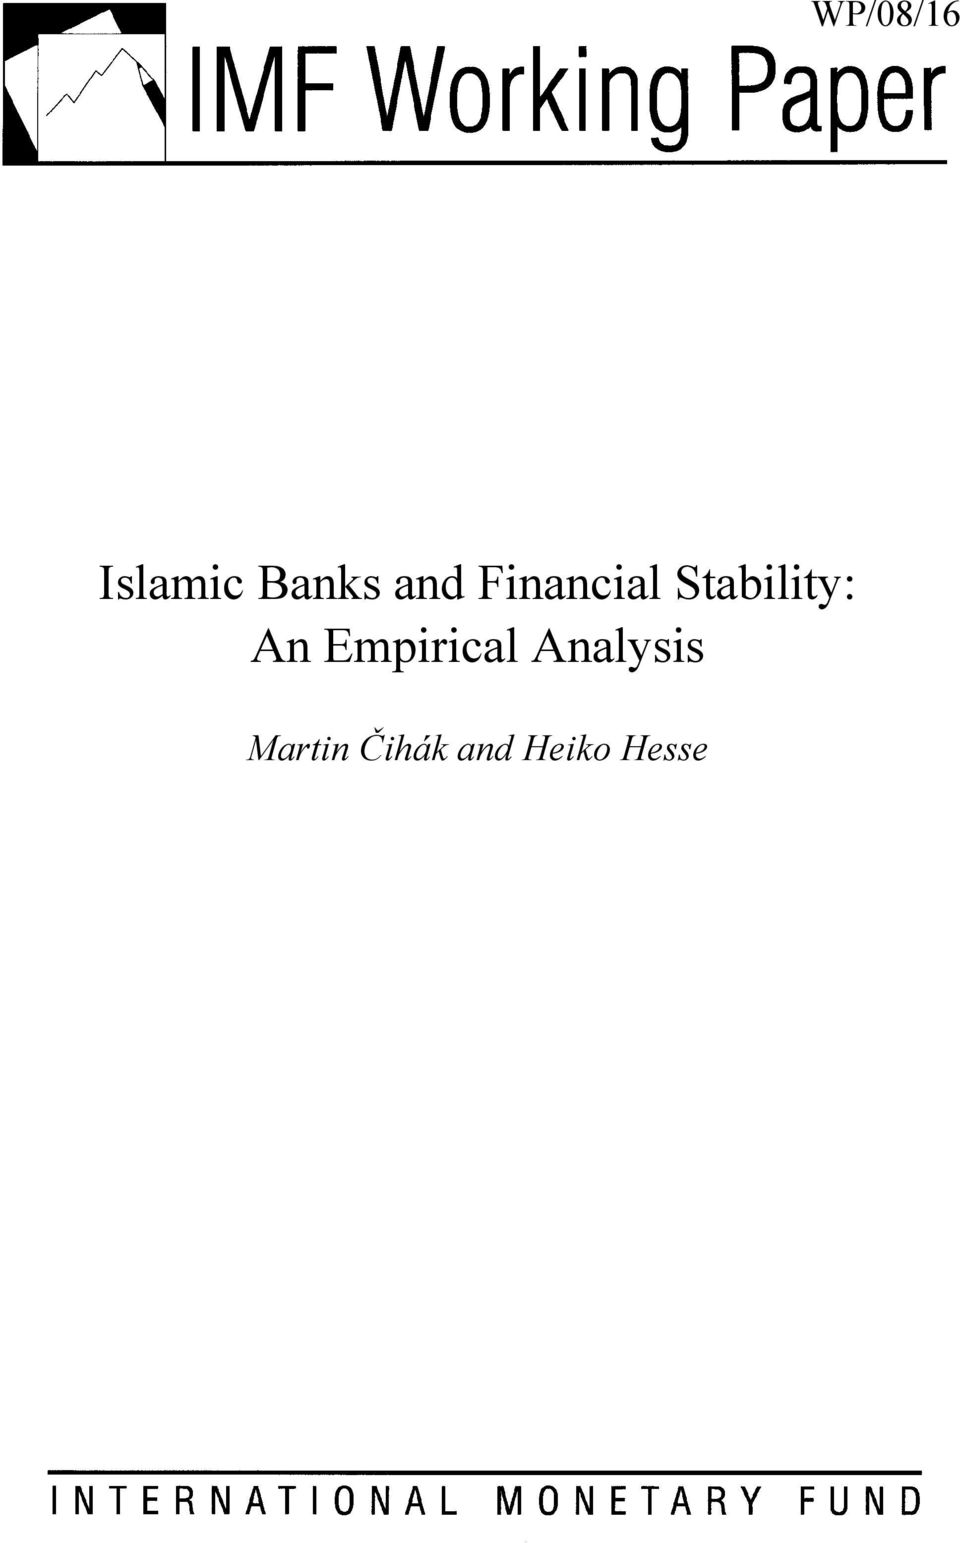 An Empirical Analysis